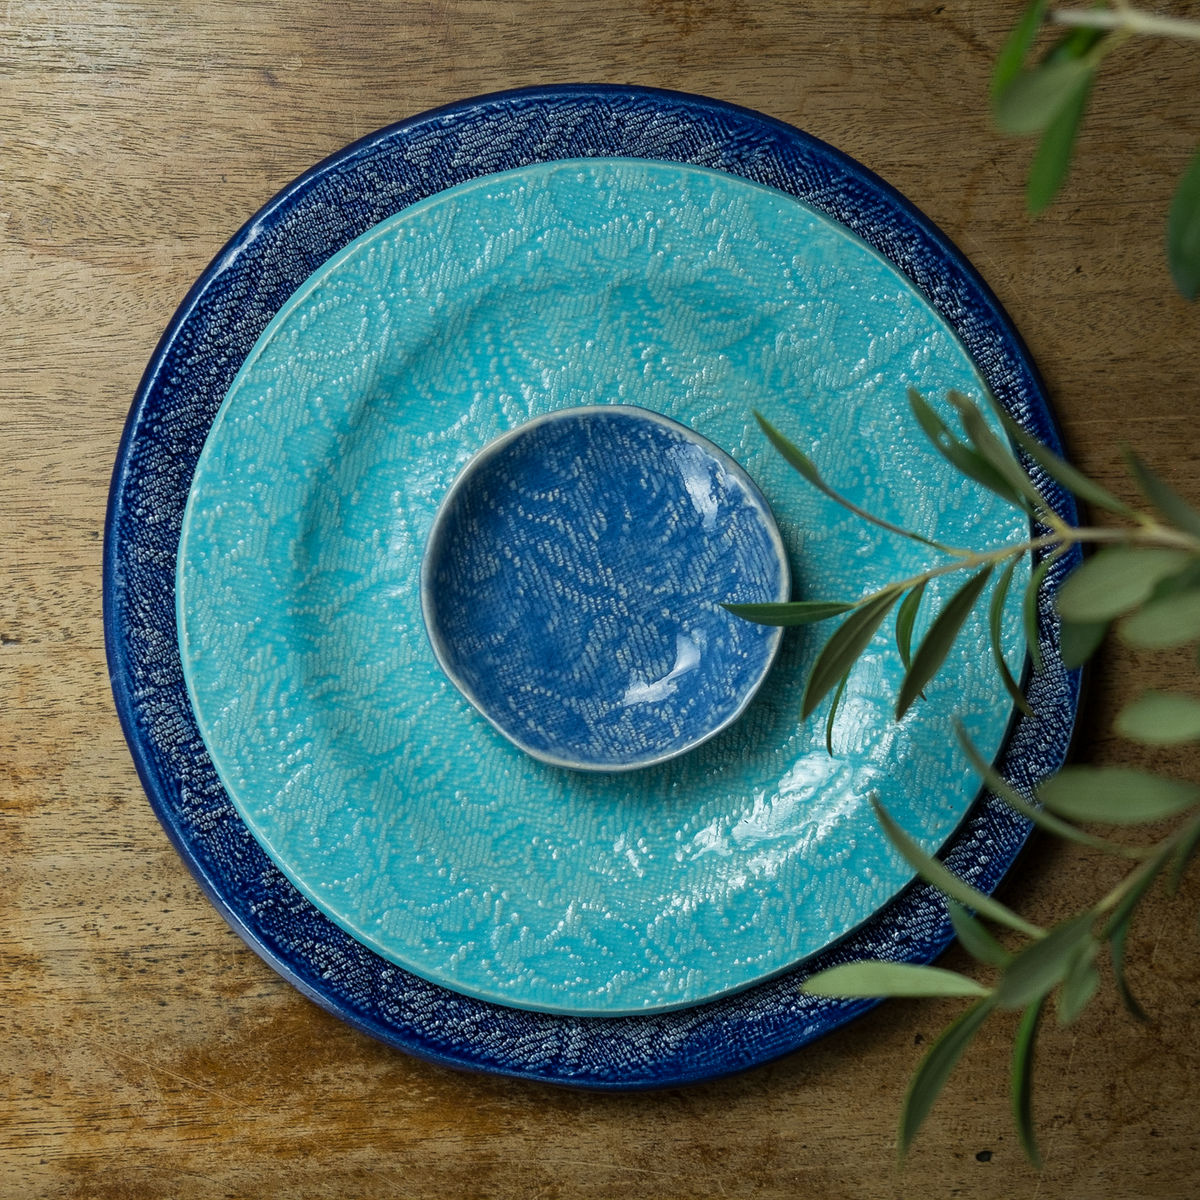 Turabi ceramics - Turquoise  lace imprinted small plate - Handcrafted in Palestine - product images  of